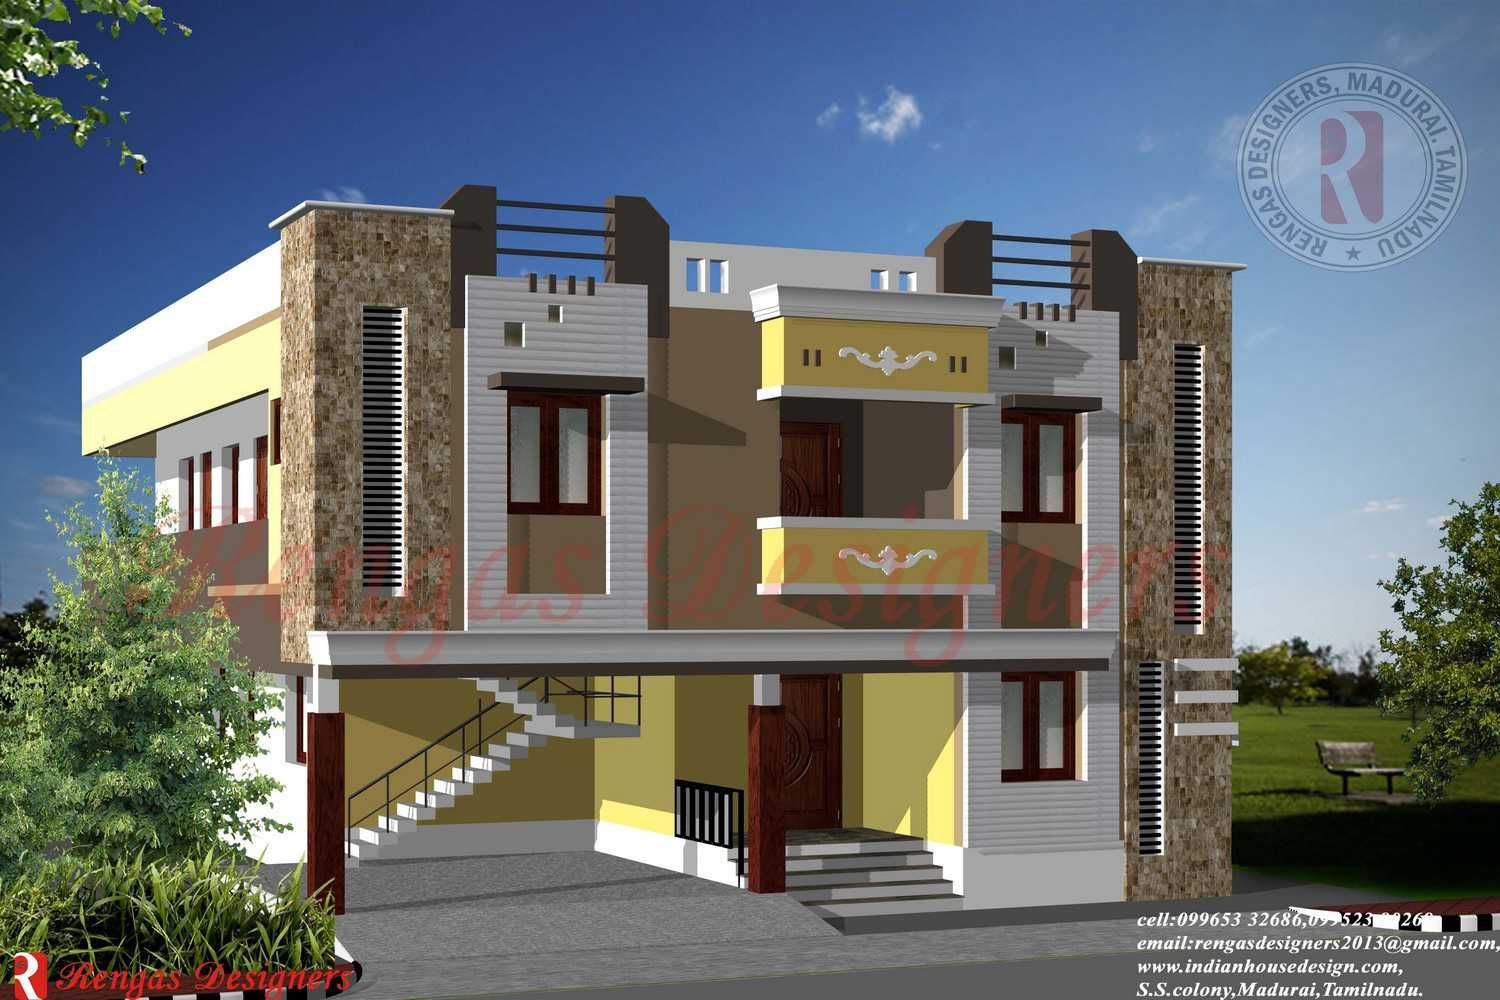 Parapet wall designs google search residence for Contemporary indian house elevations